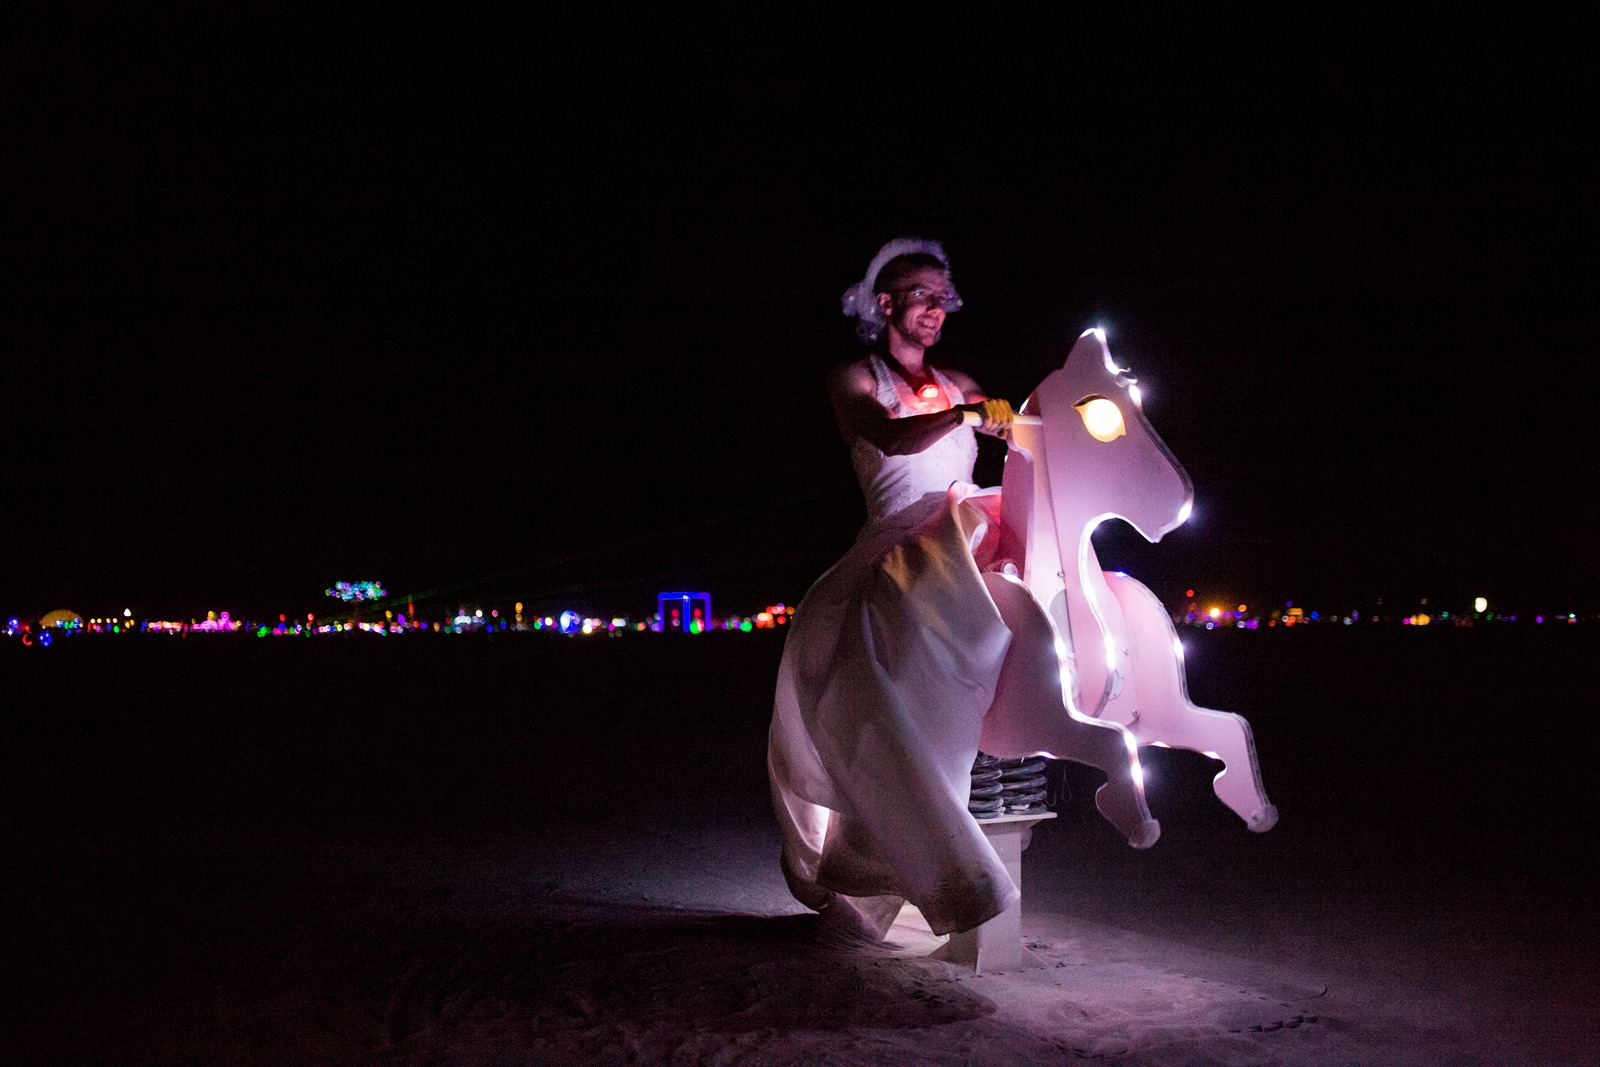 Burning Man - Marilyn riding a horse in the middle of the playa